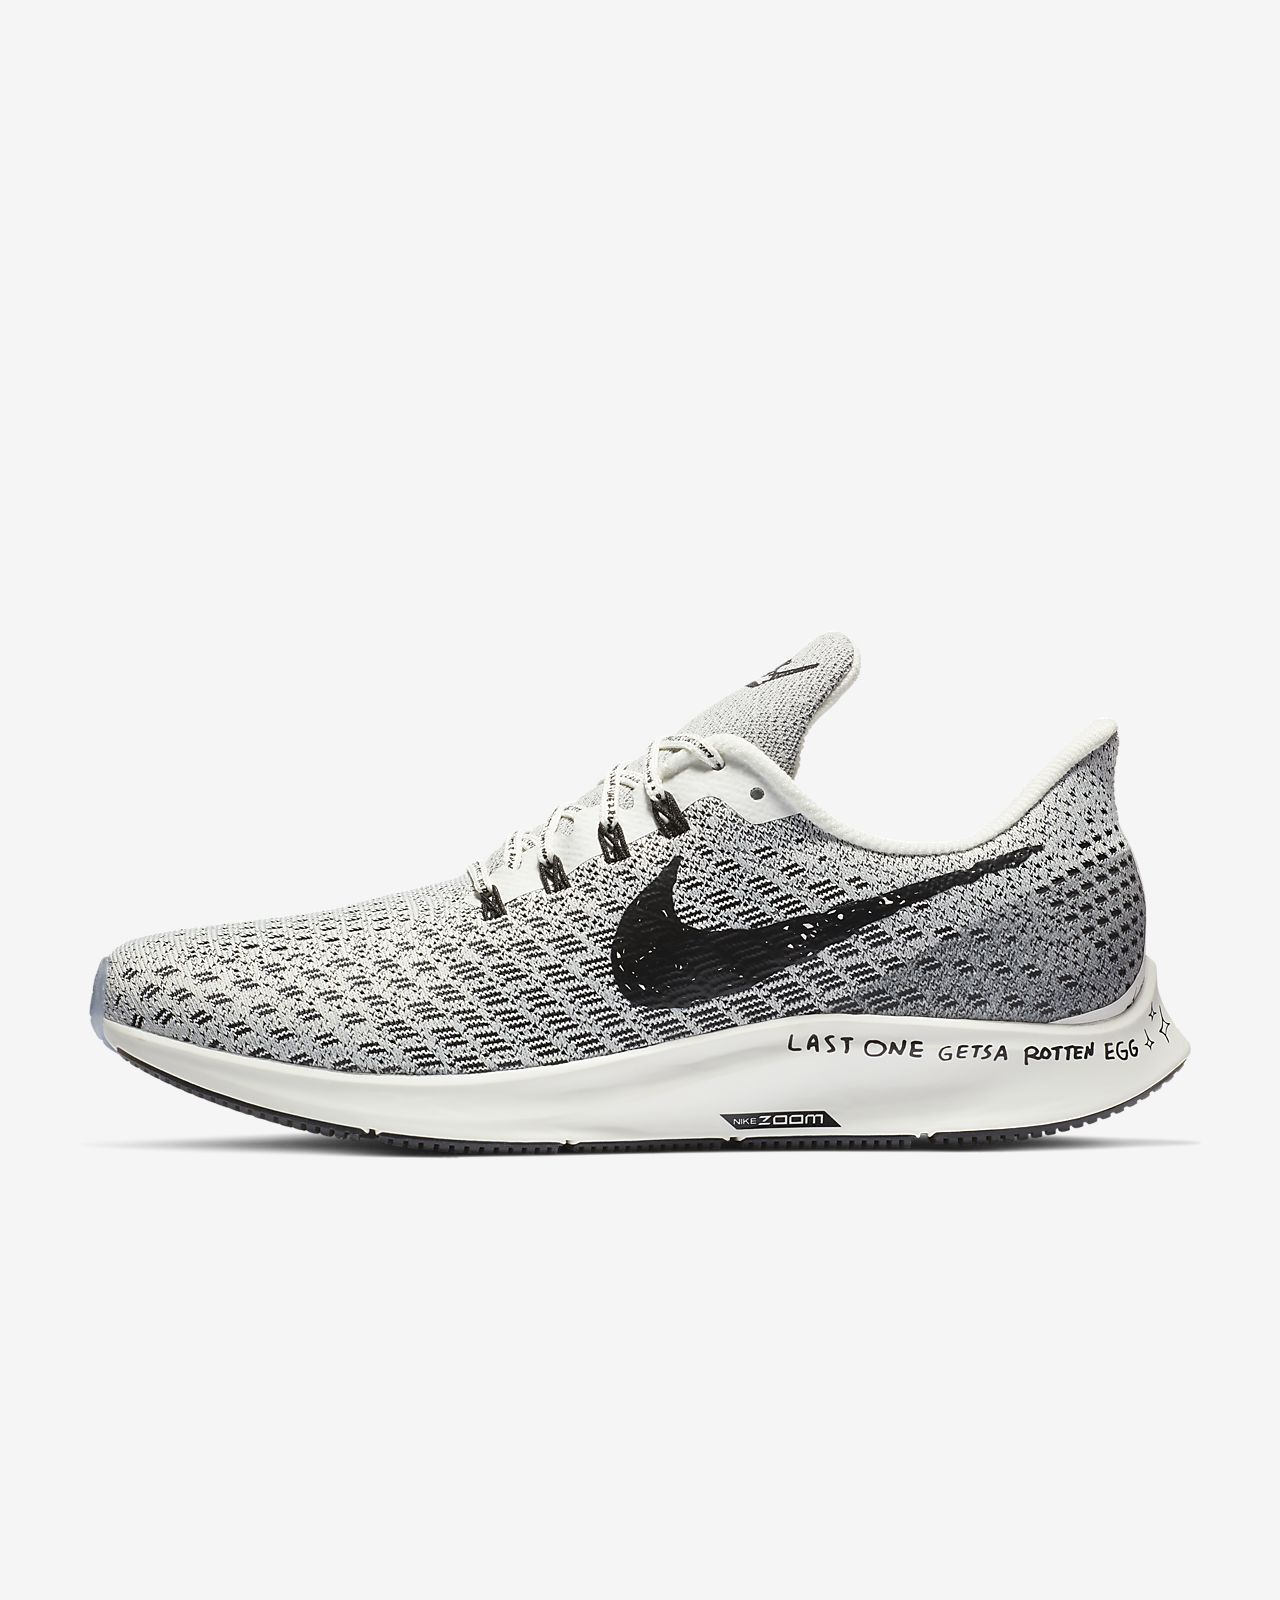 Chaussure de running Nike Air Zoom Pegasus 35 Nathan Bell pour Homme